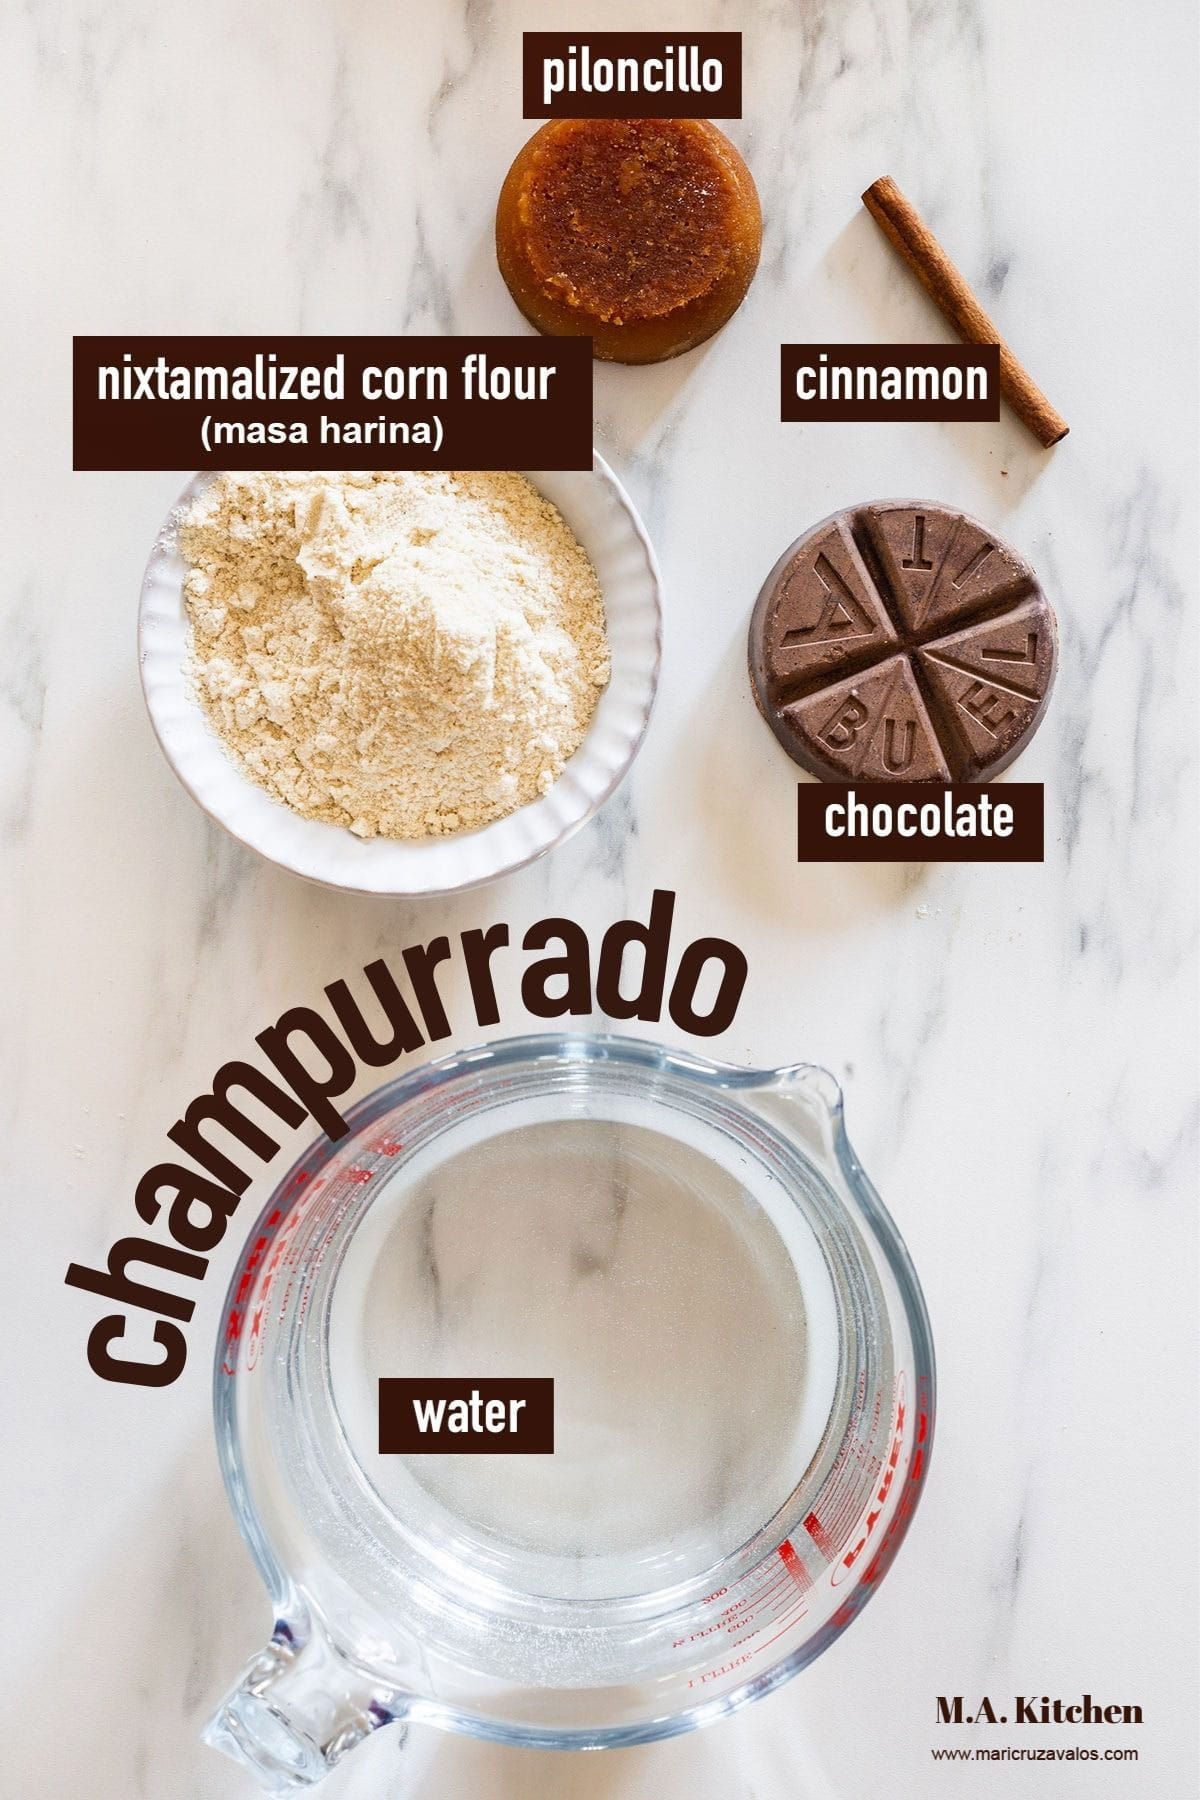 Champurrado ingredients labeled and displayed in a marble surface.